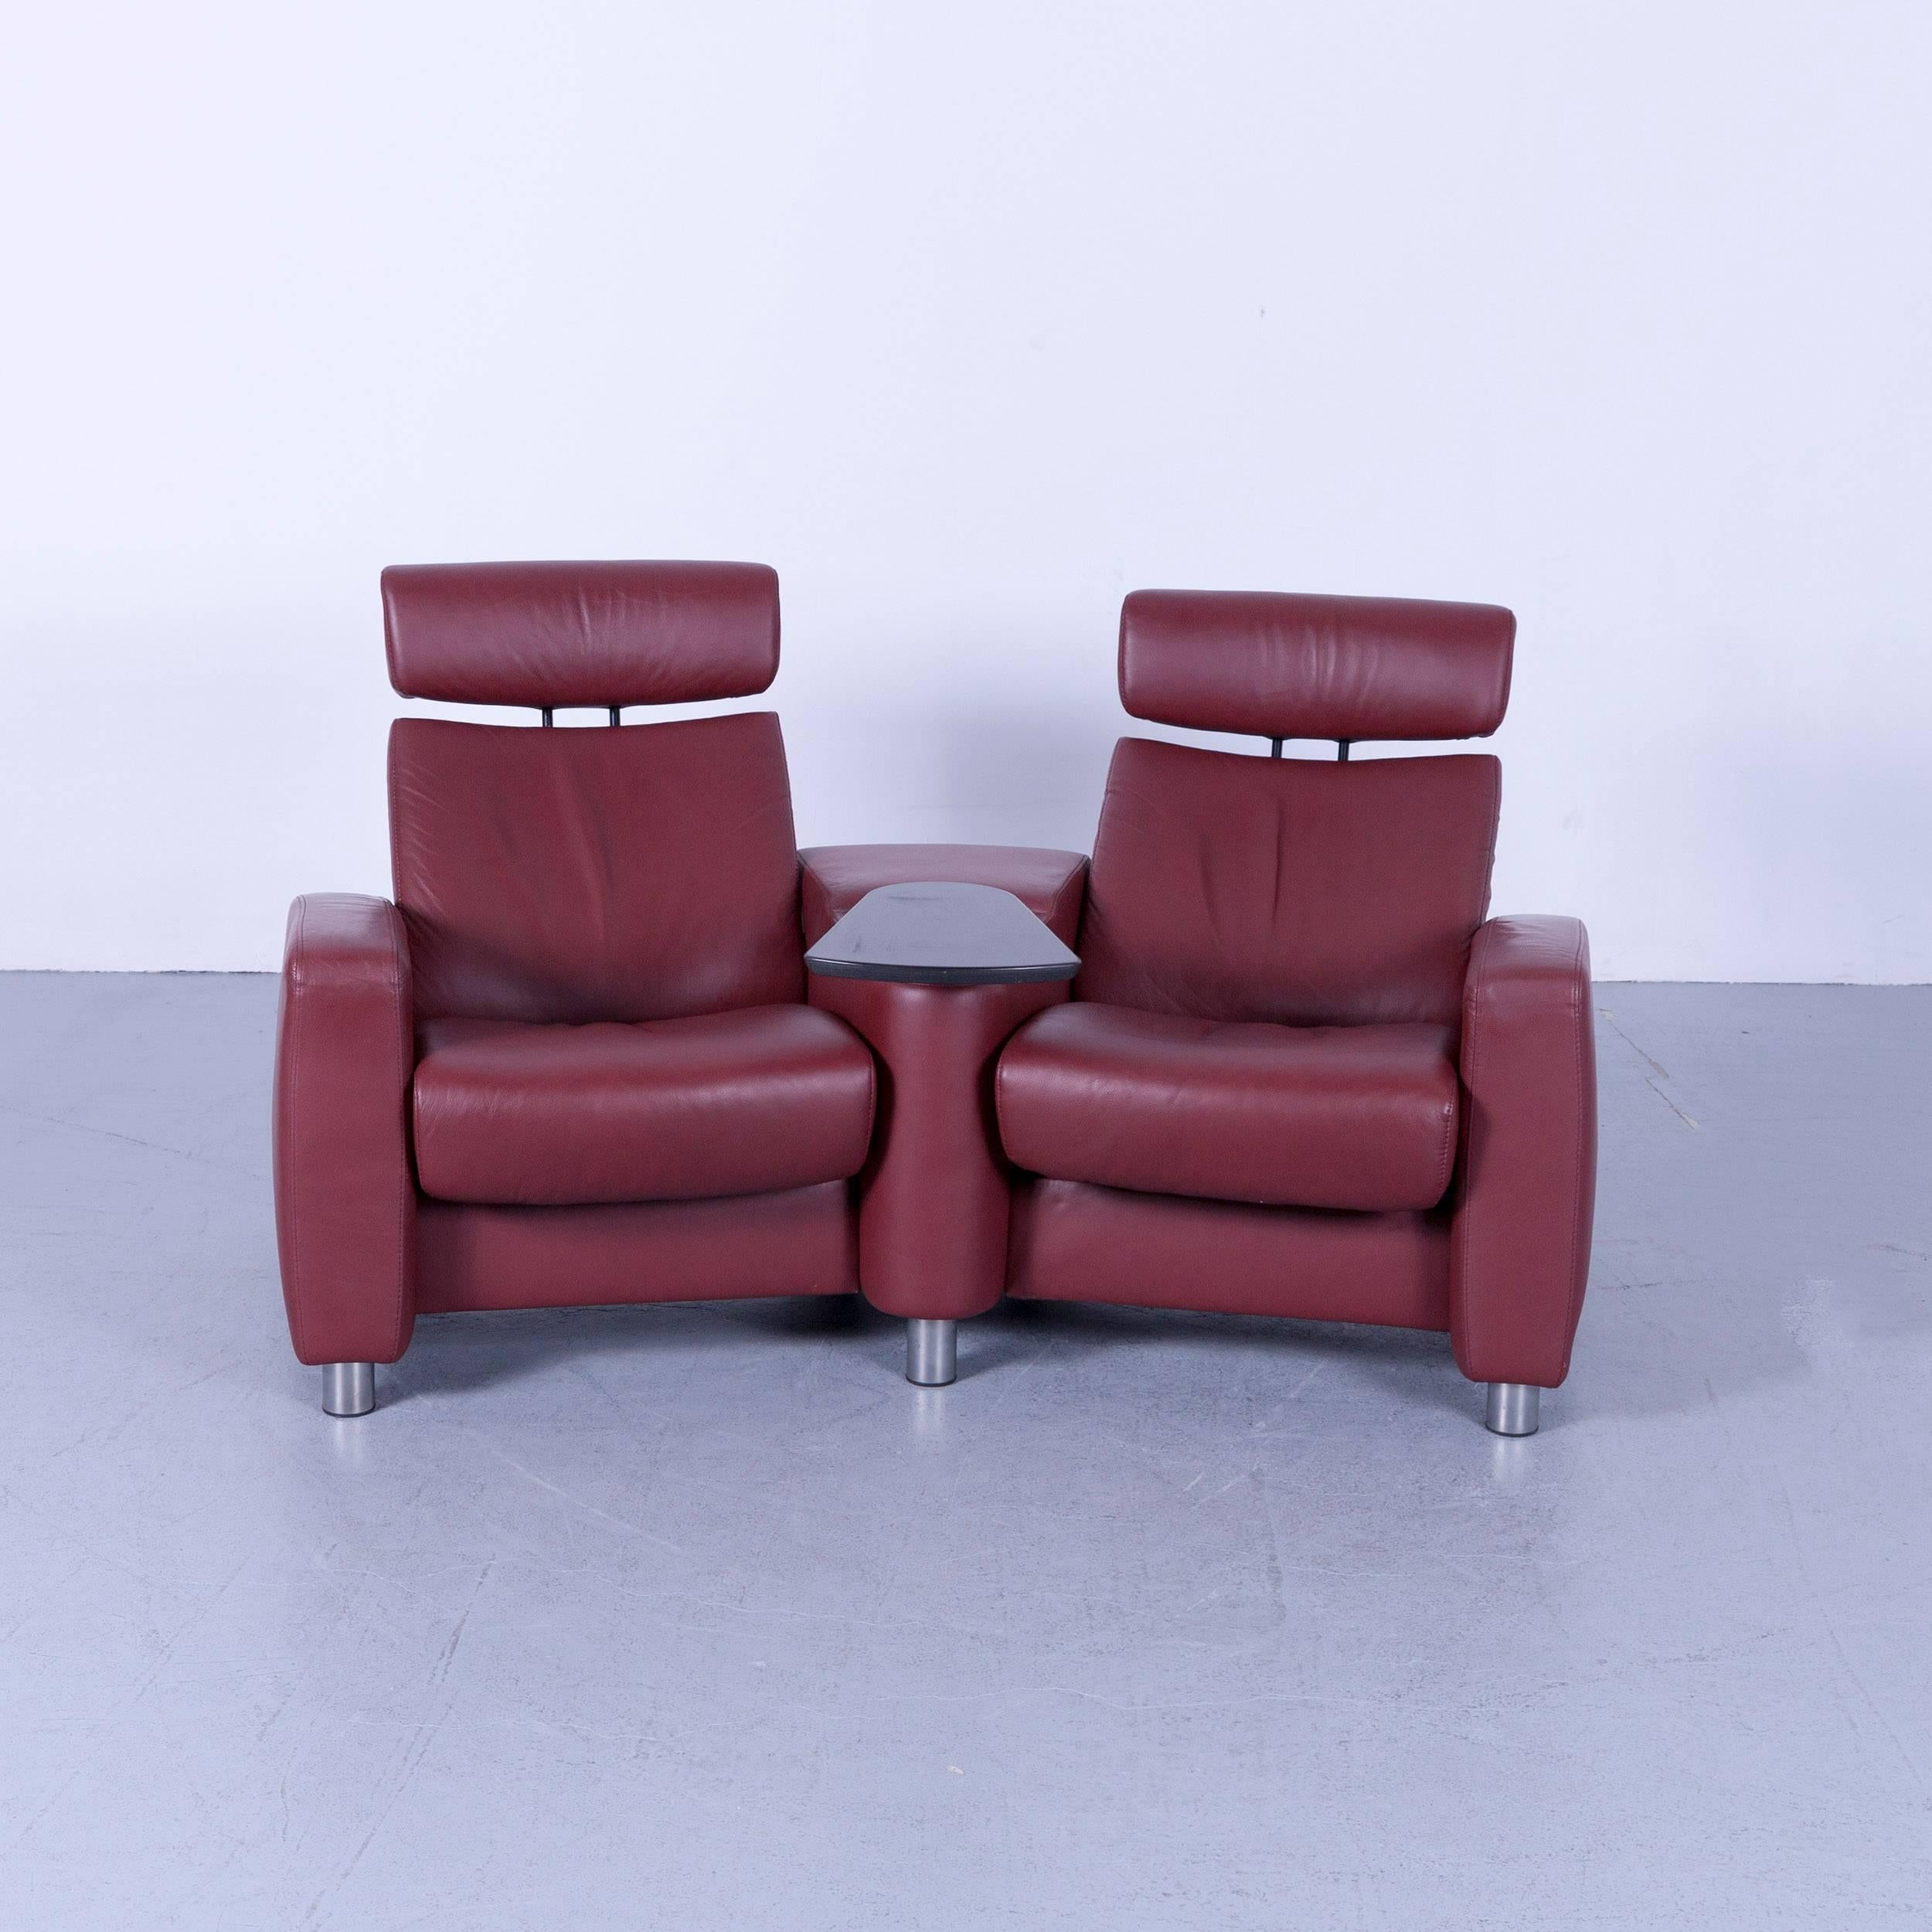 Ekornes Stressless Arion Two Seat Sofa Set In Red Colored Leather Modern  Recliner Chair Designer